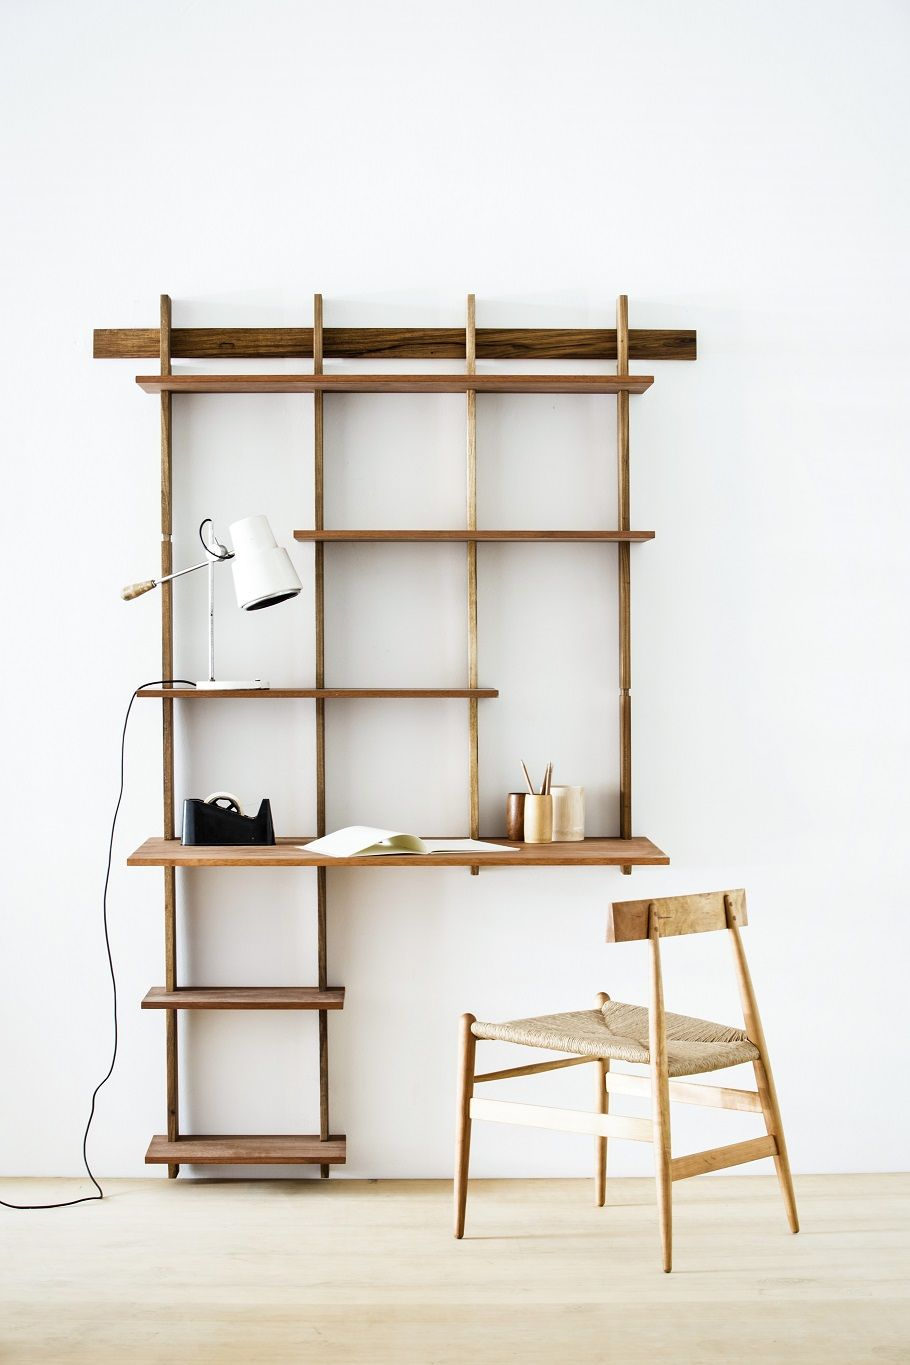 w sets details downloads gosik miscellaneous stack category id up s bookshelf modular objects me title